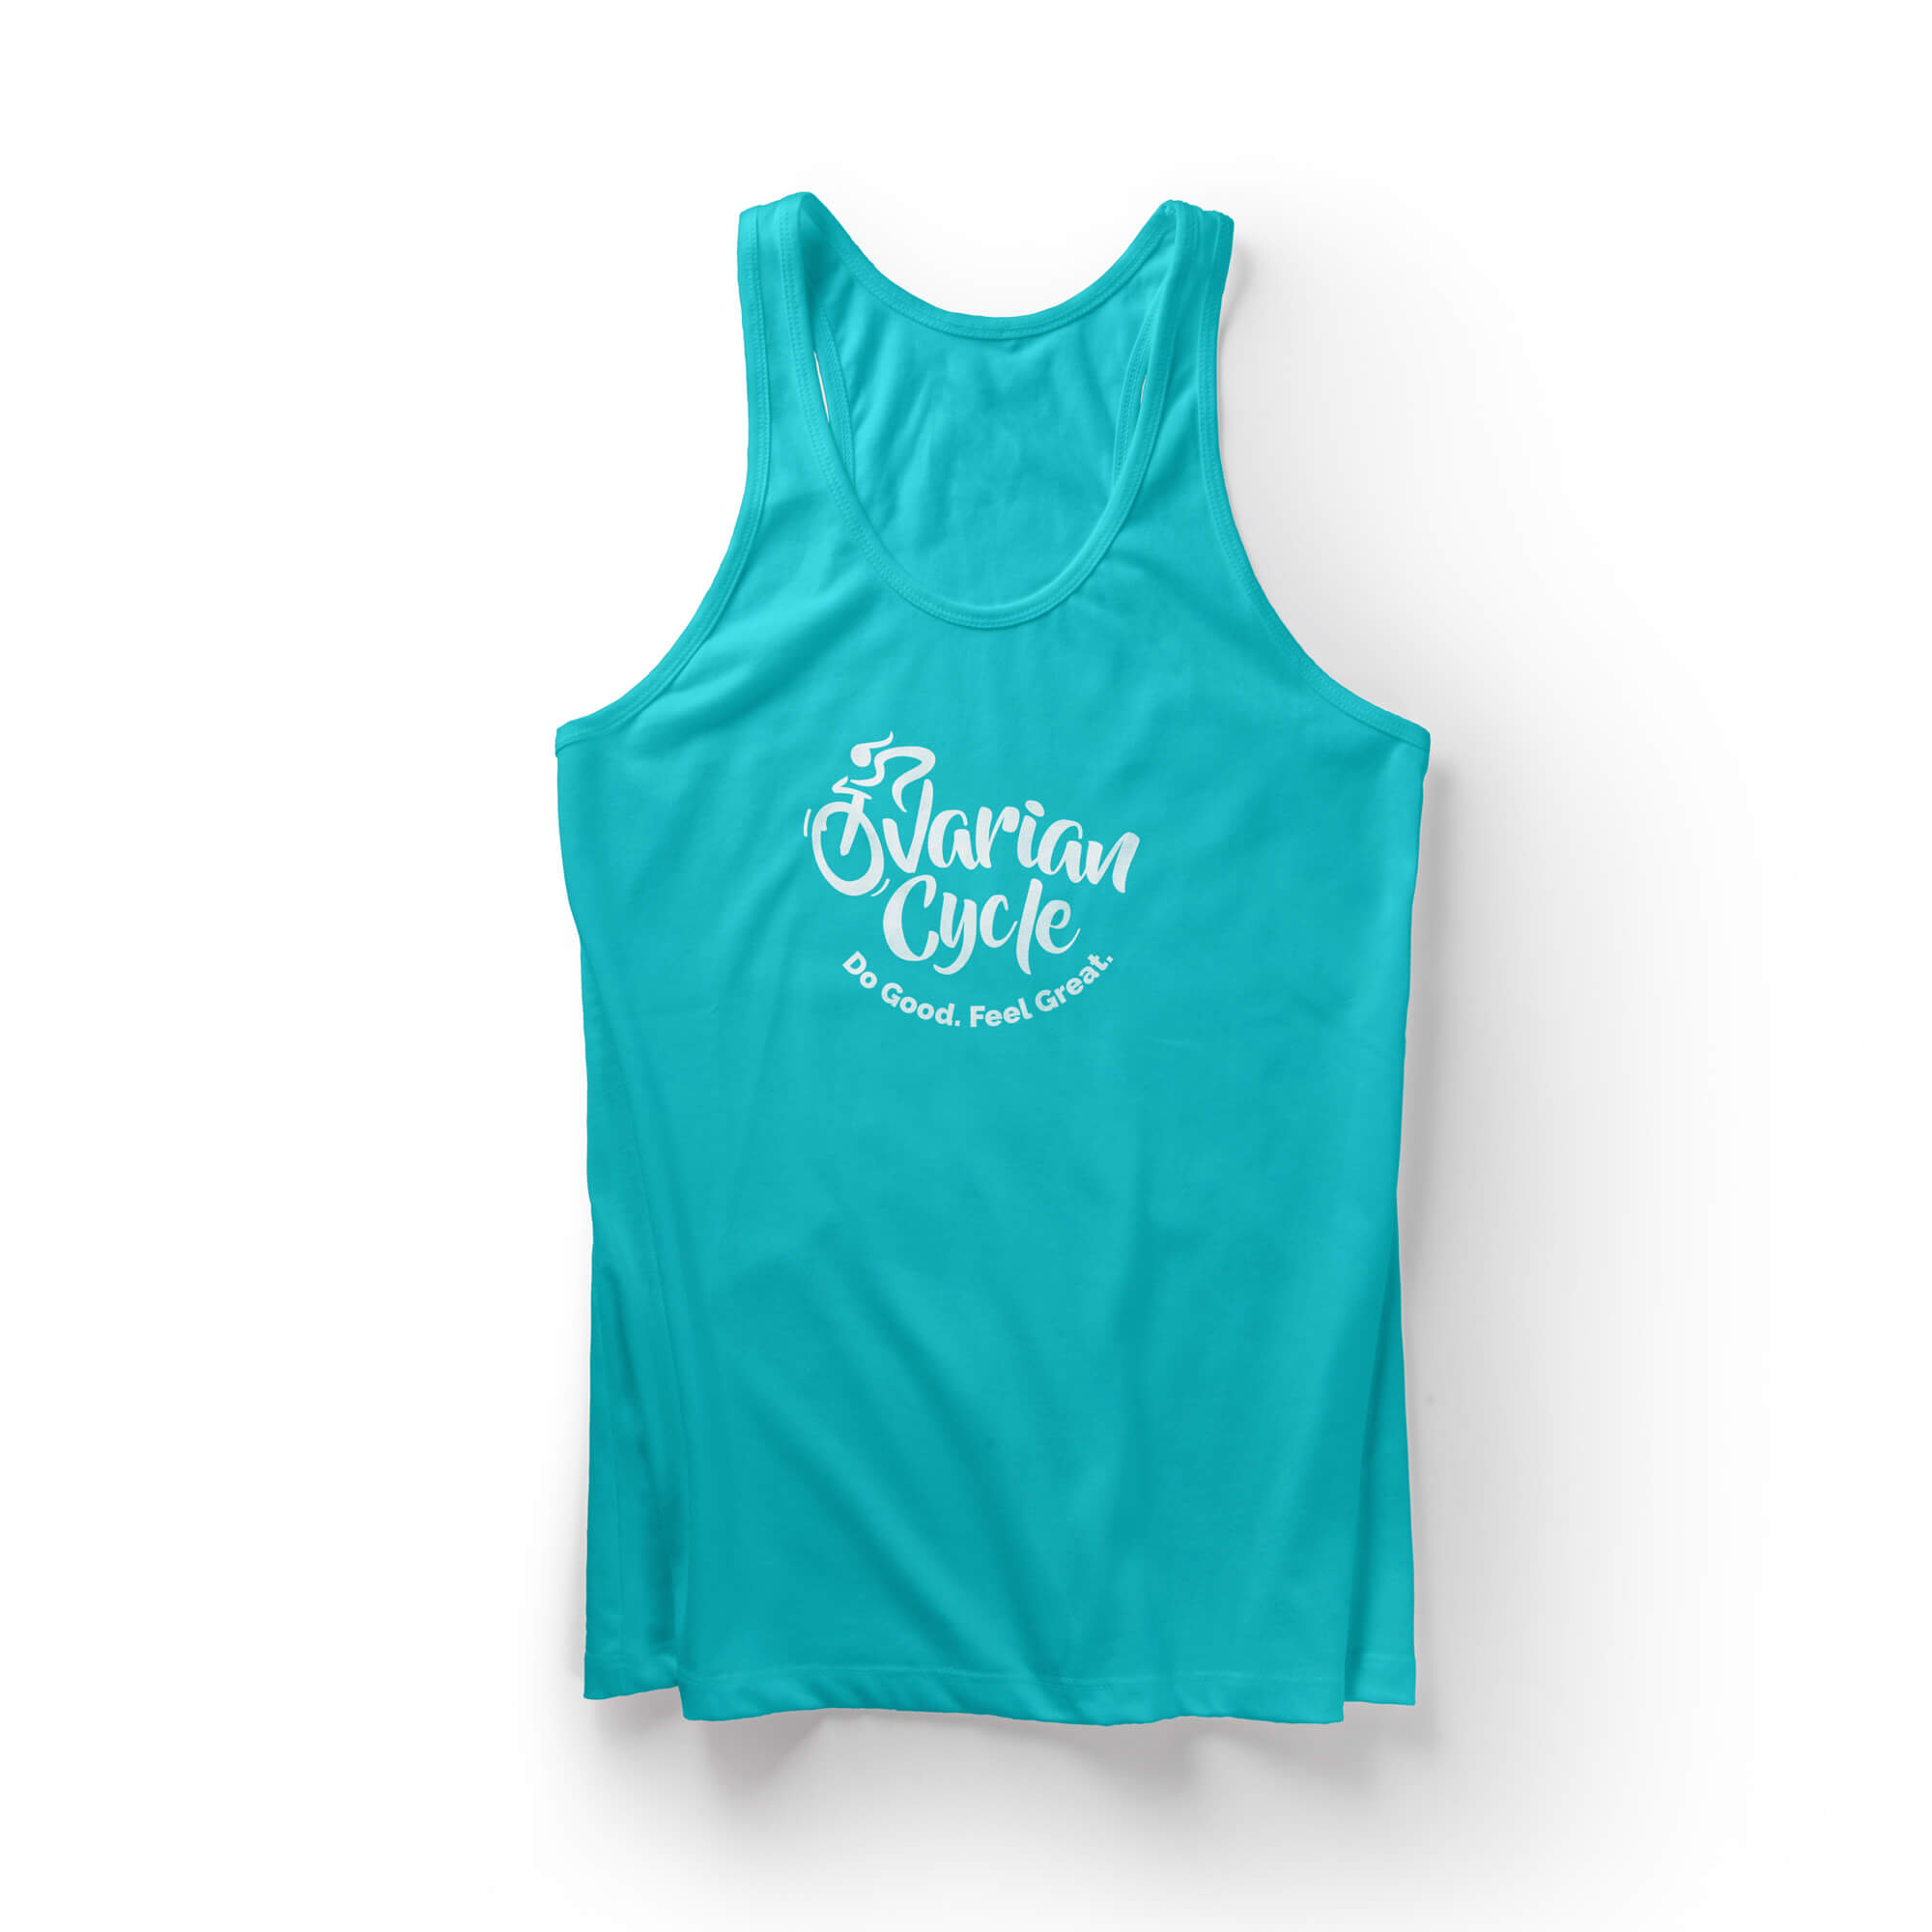 Ovarian Cycle logo on a teal tanktop